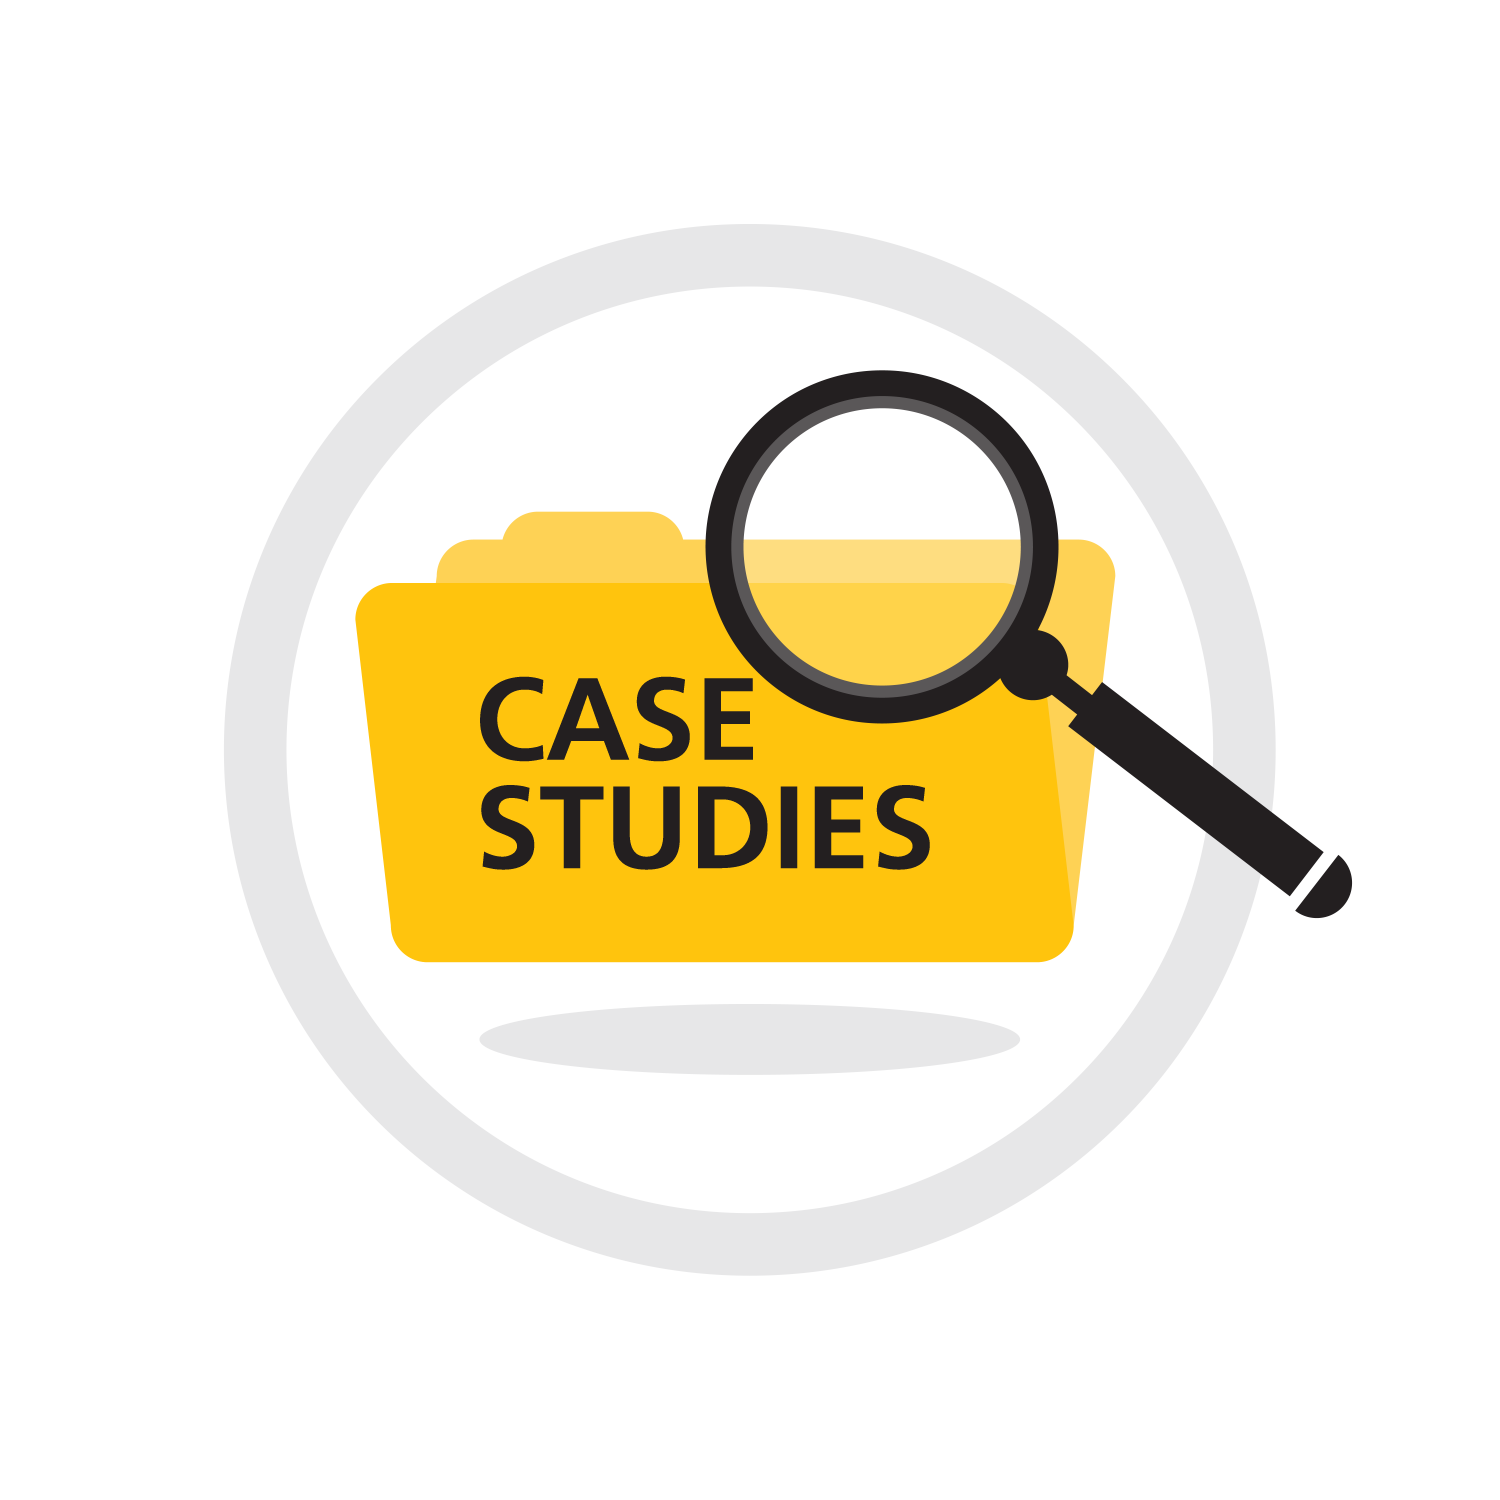 business studies case study what Learn from the experiences and tips of real-life business owners on how to start, run and grow your business in victoria case studies the social science case study use online government templates for success.